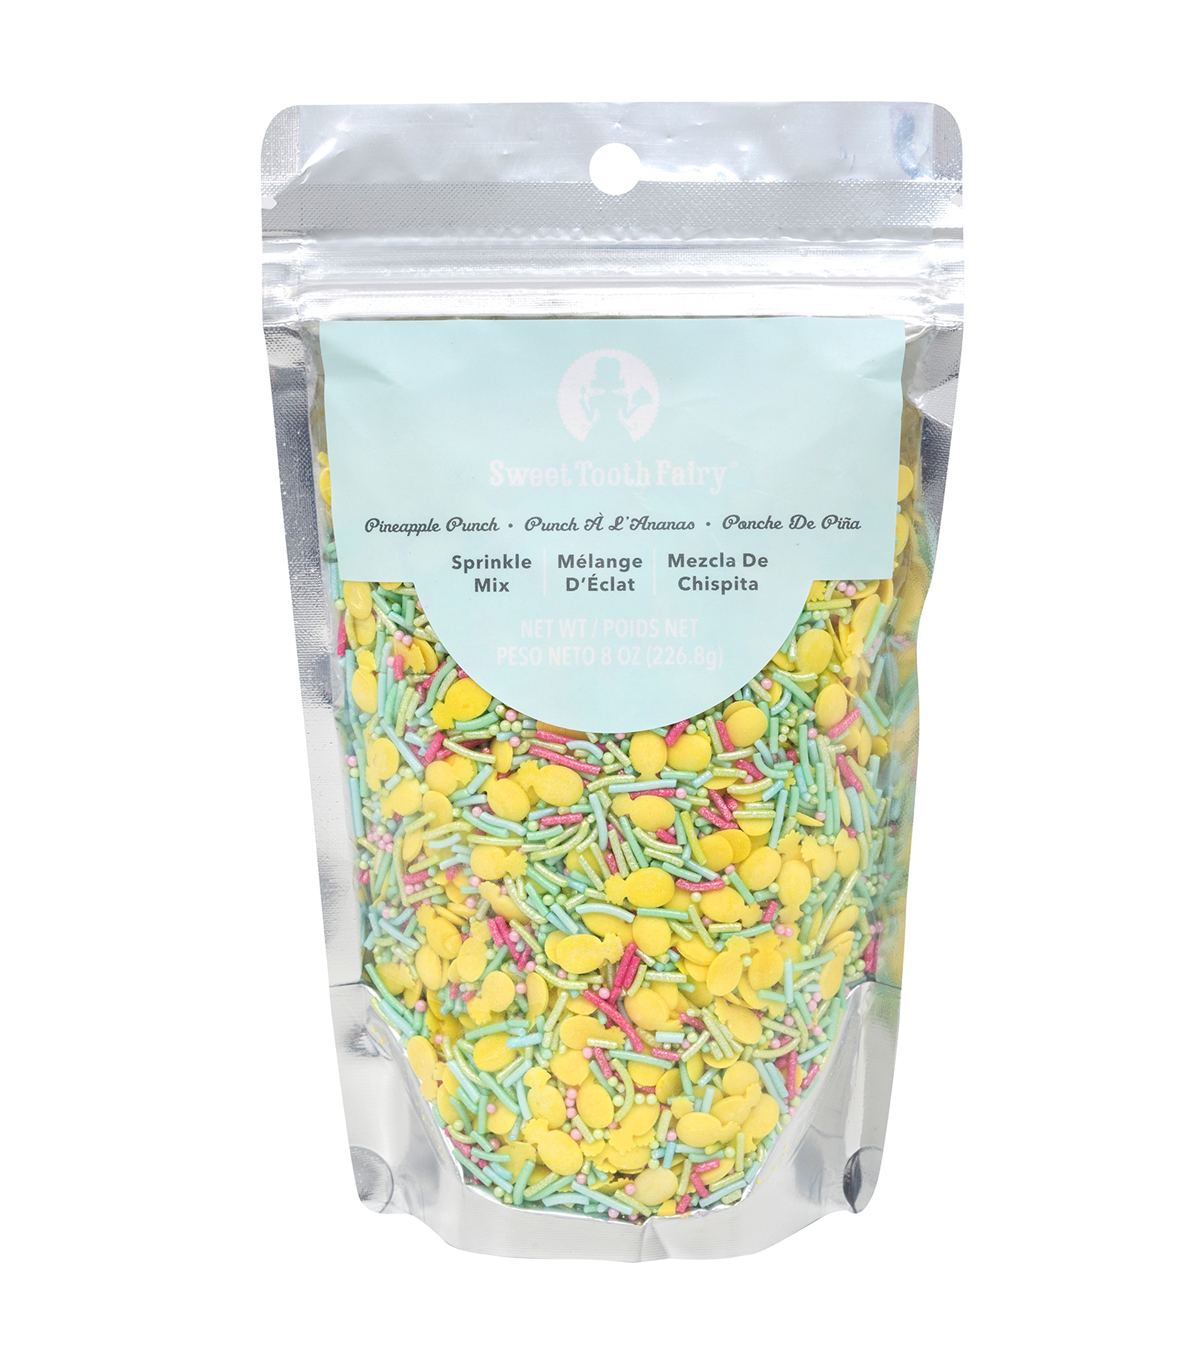 Sweet Tooth Fairy 8 oz. Sprinkle Mix-Pineapple Punch